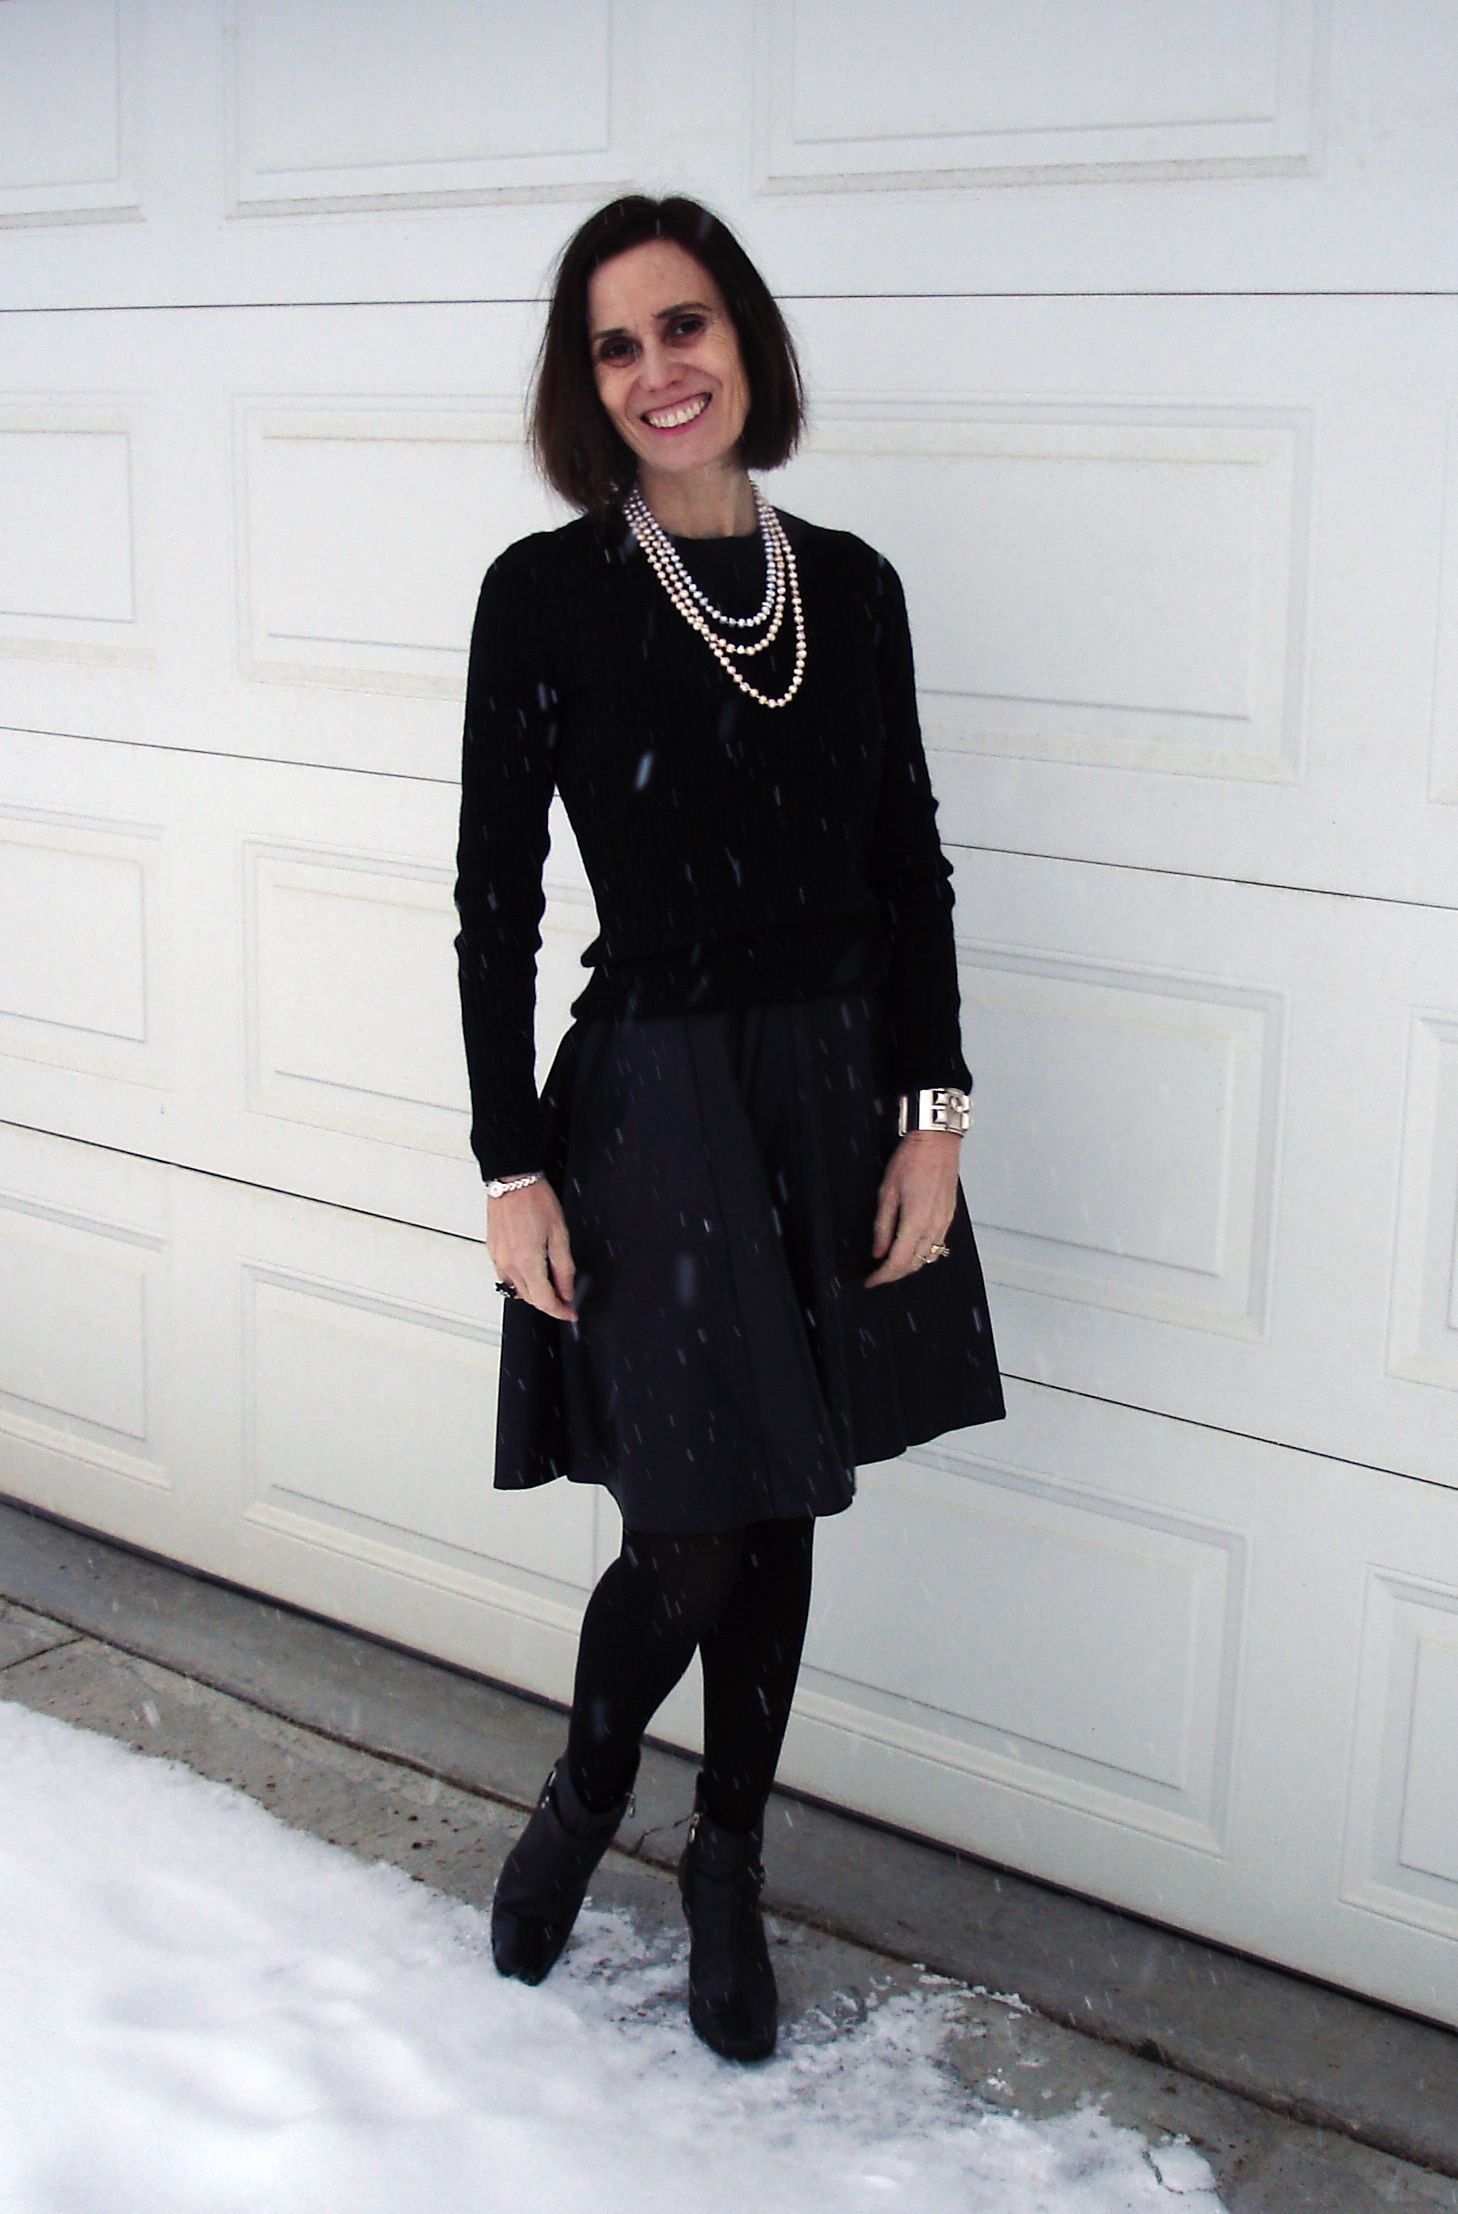 #HighLatitudeStyle How to dress stylishly in cold climate without freezing to hypothermia  http://www.highlatitudestyle.com